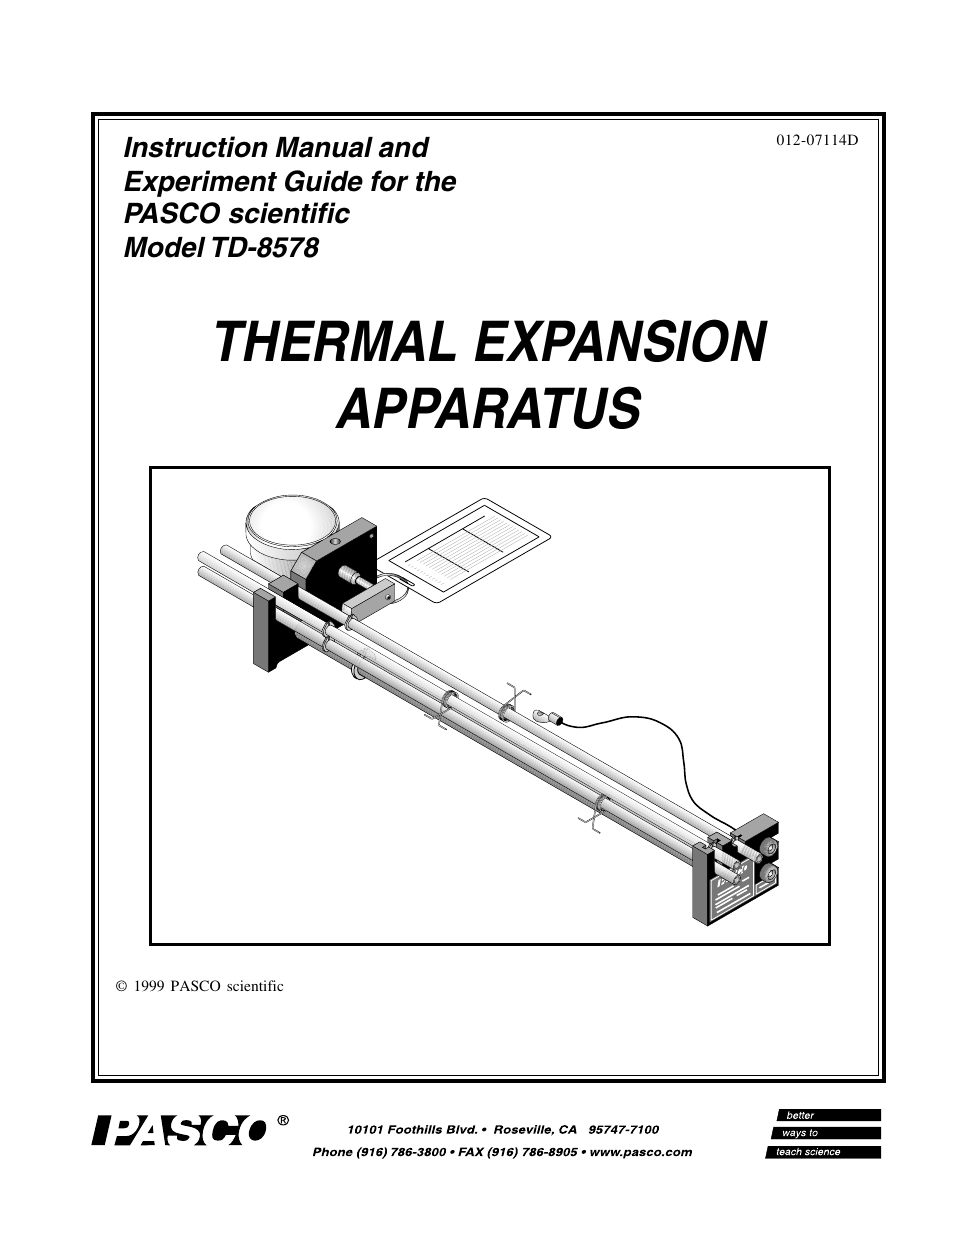 pasco td 8578 thermal expansion apparatus user manual 10 pages honeywell 1202g user guide honeywell user guide cm921